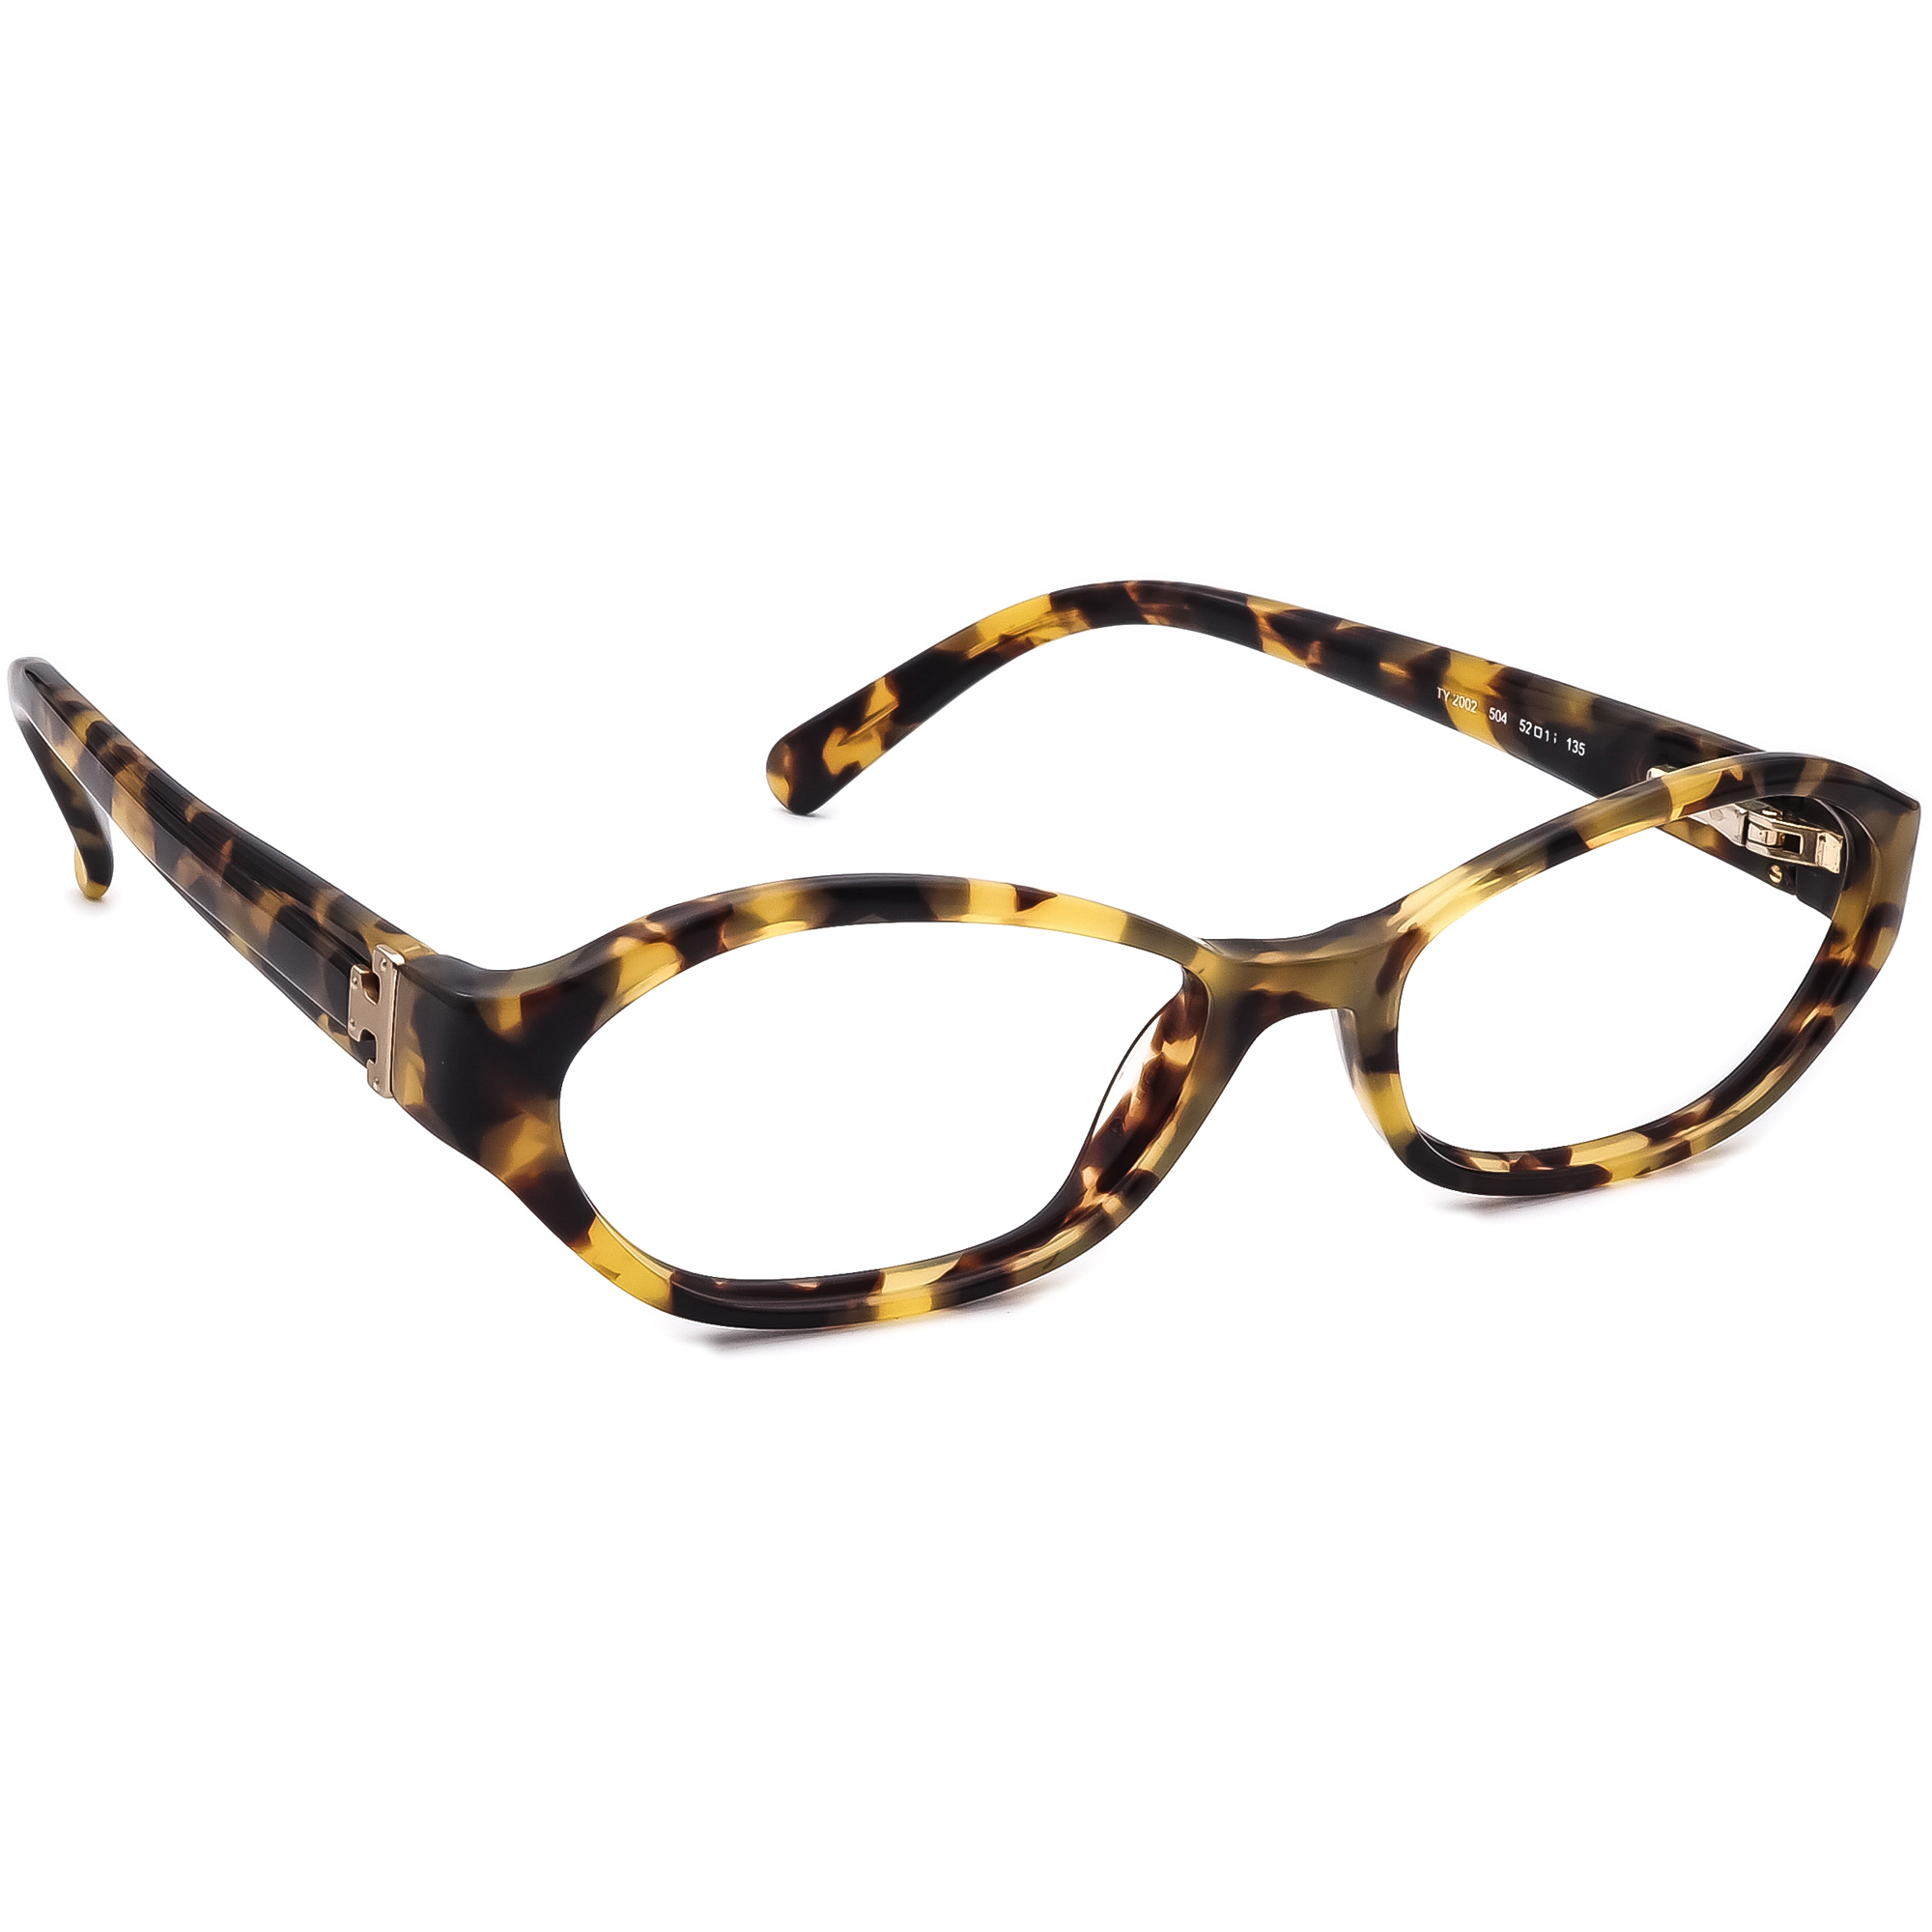 Tory Burch TY 2002 504 Eyeglasses